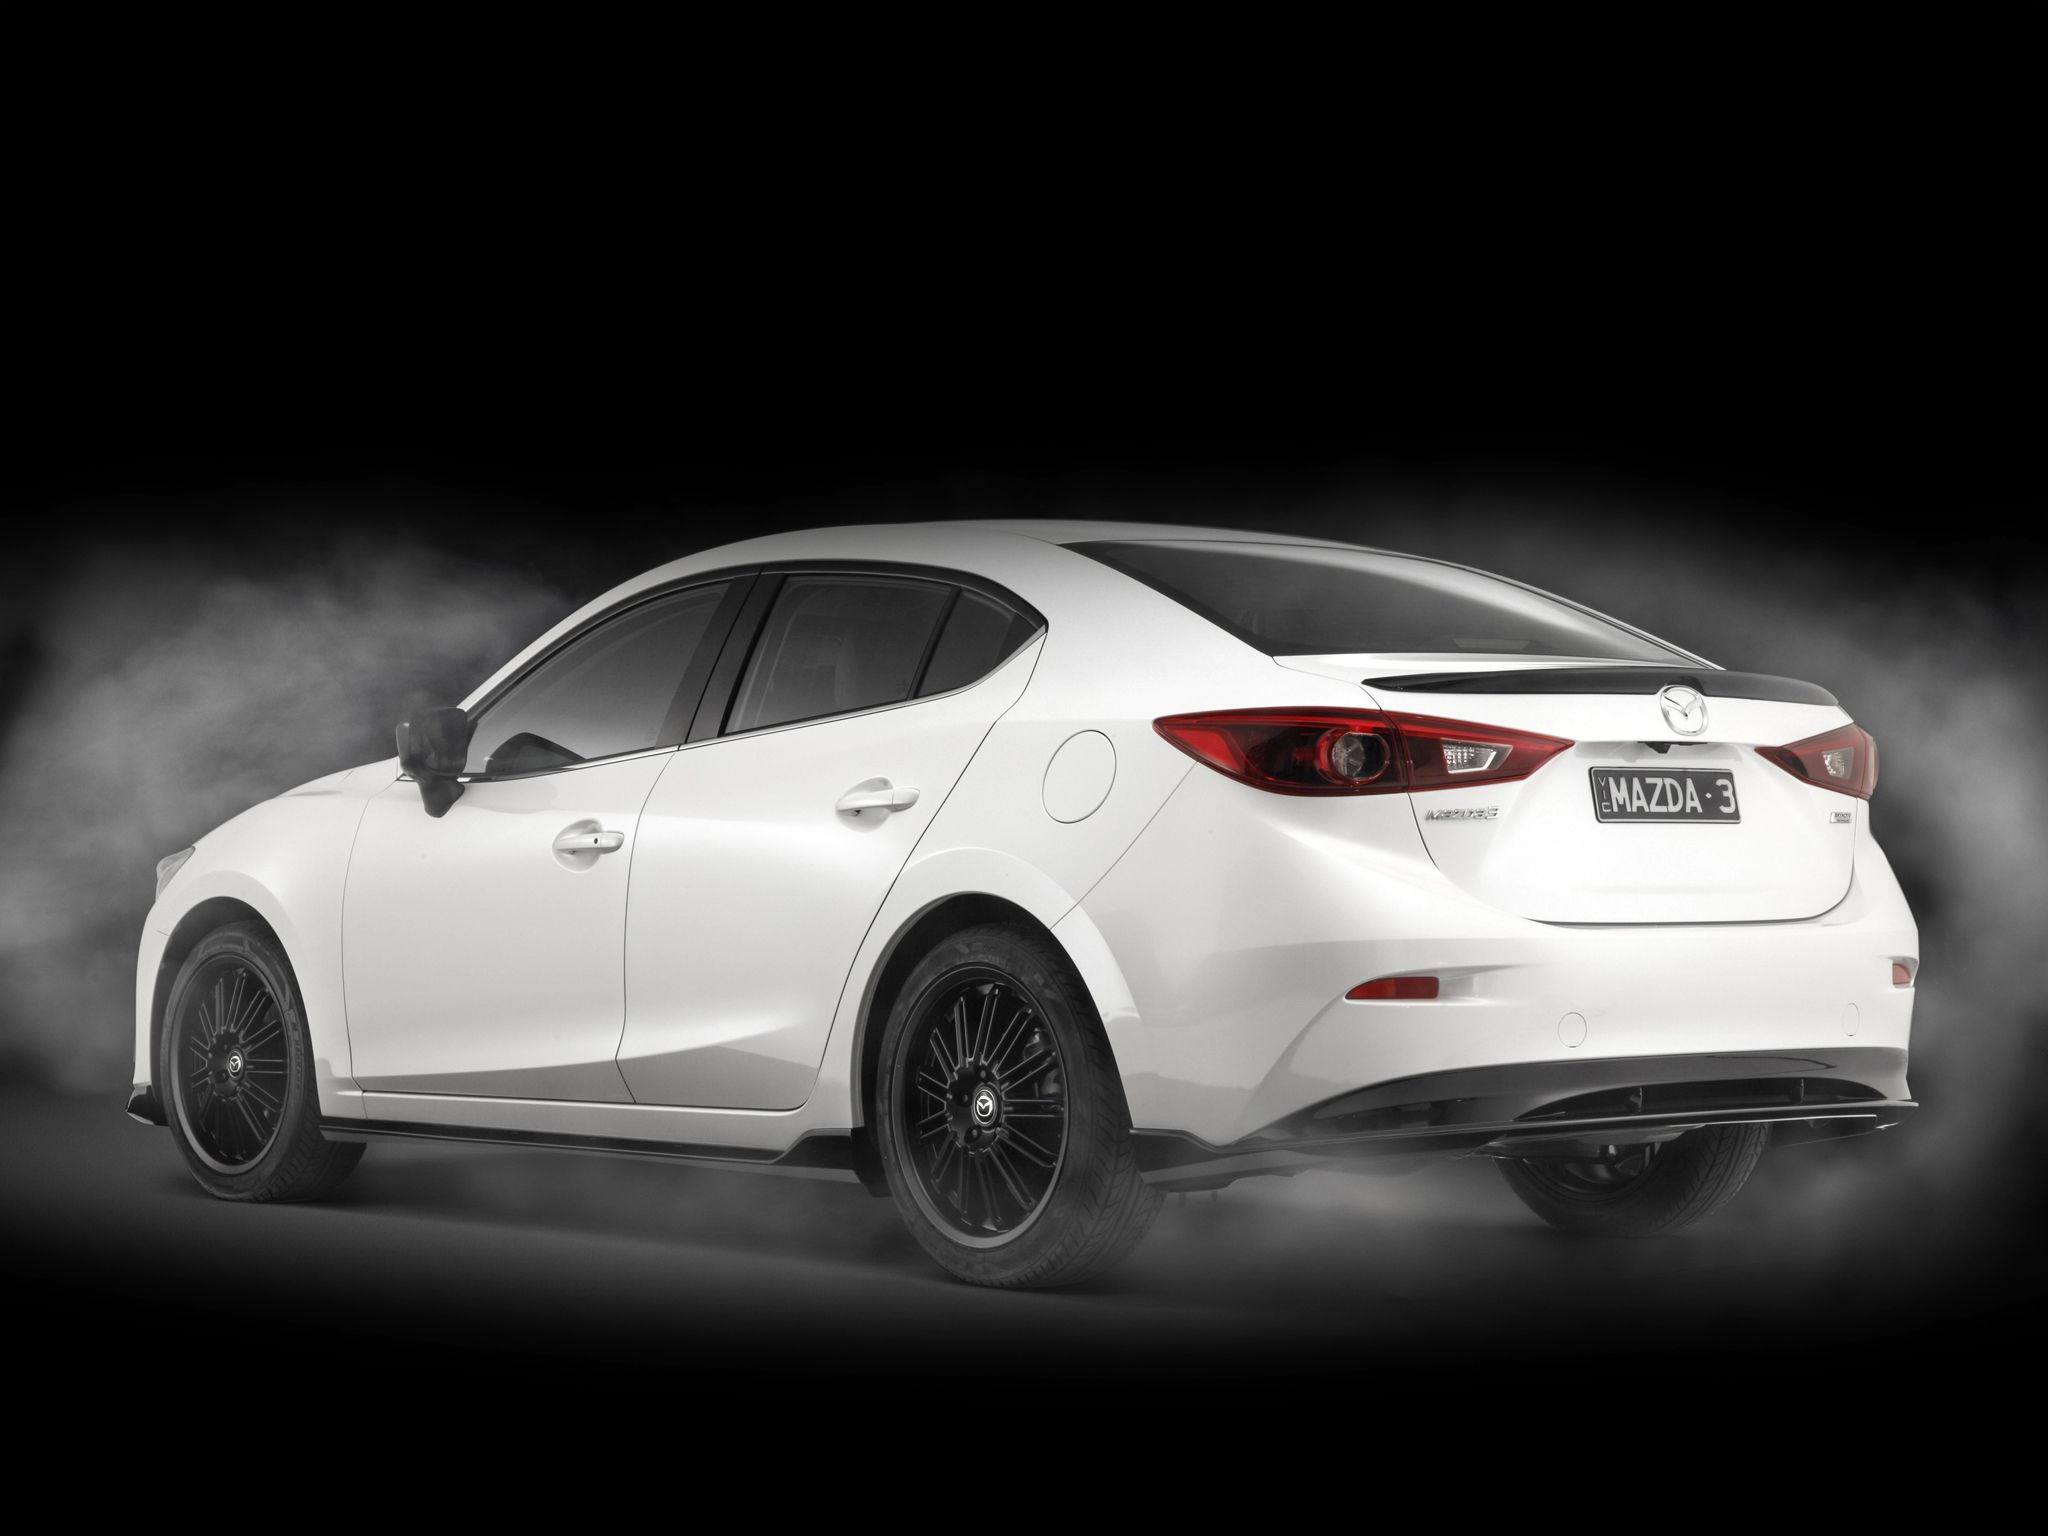 2015 Mazda3 Black Limited BM mazda wallpaper 4096x2731